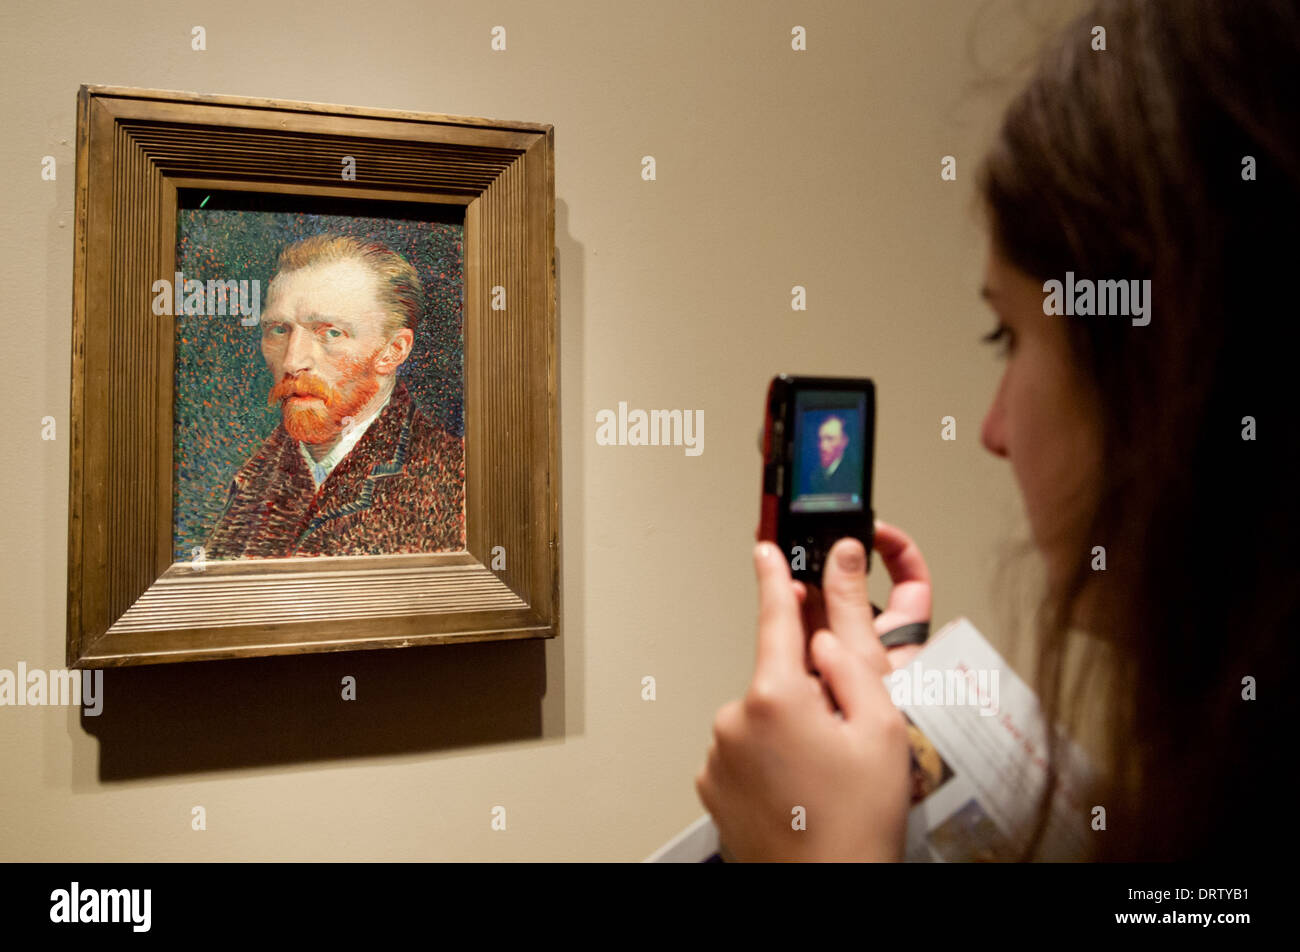 A pretty brunette girl takes a picture of 'Self-Portrait', by Vincent van Gogh, in The Art Institute of Chicago art museum. - Stock Image